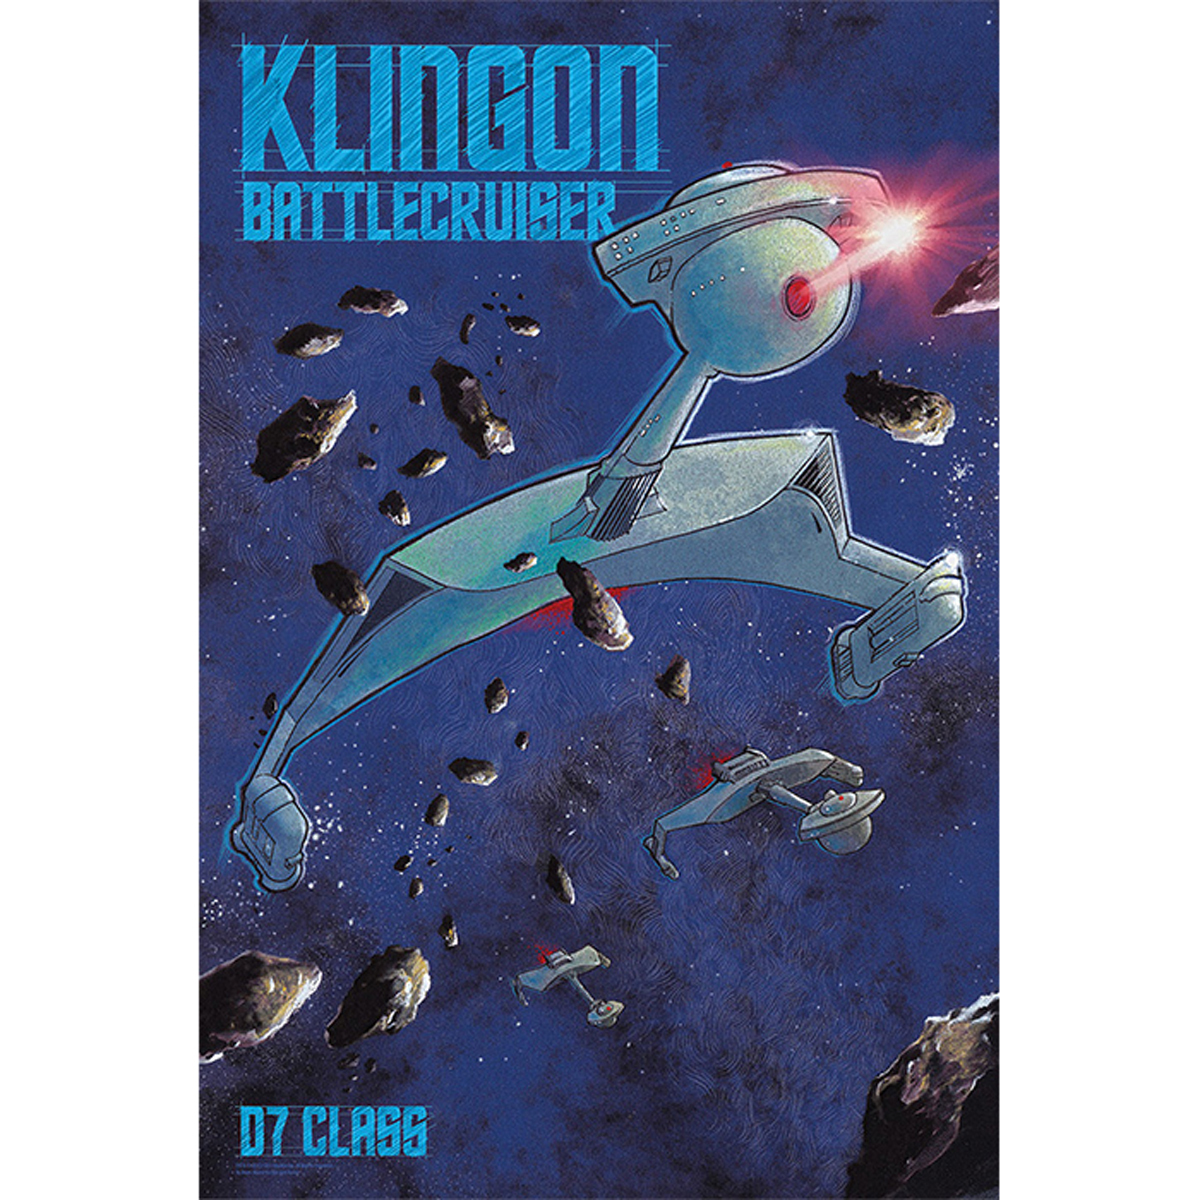 Star Trek The Original Series D7 Class Klingon Battlecruiser Poster [16x24]